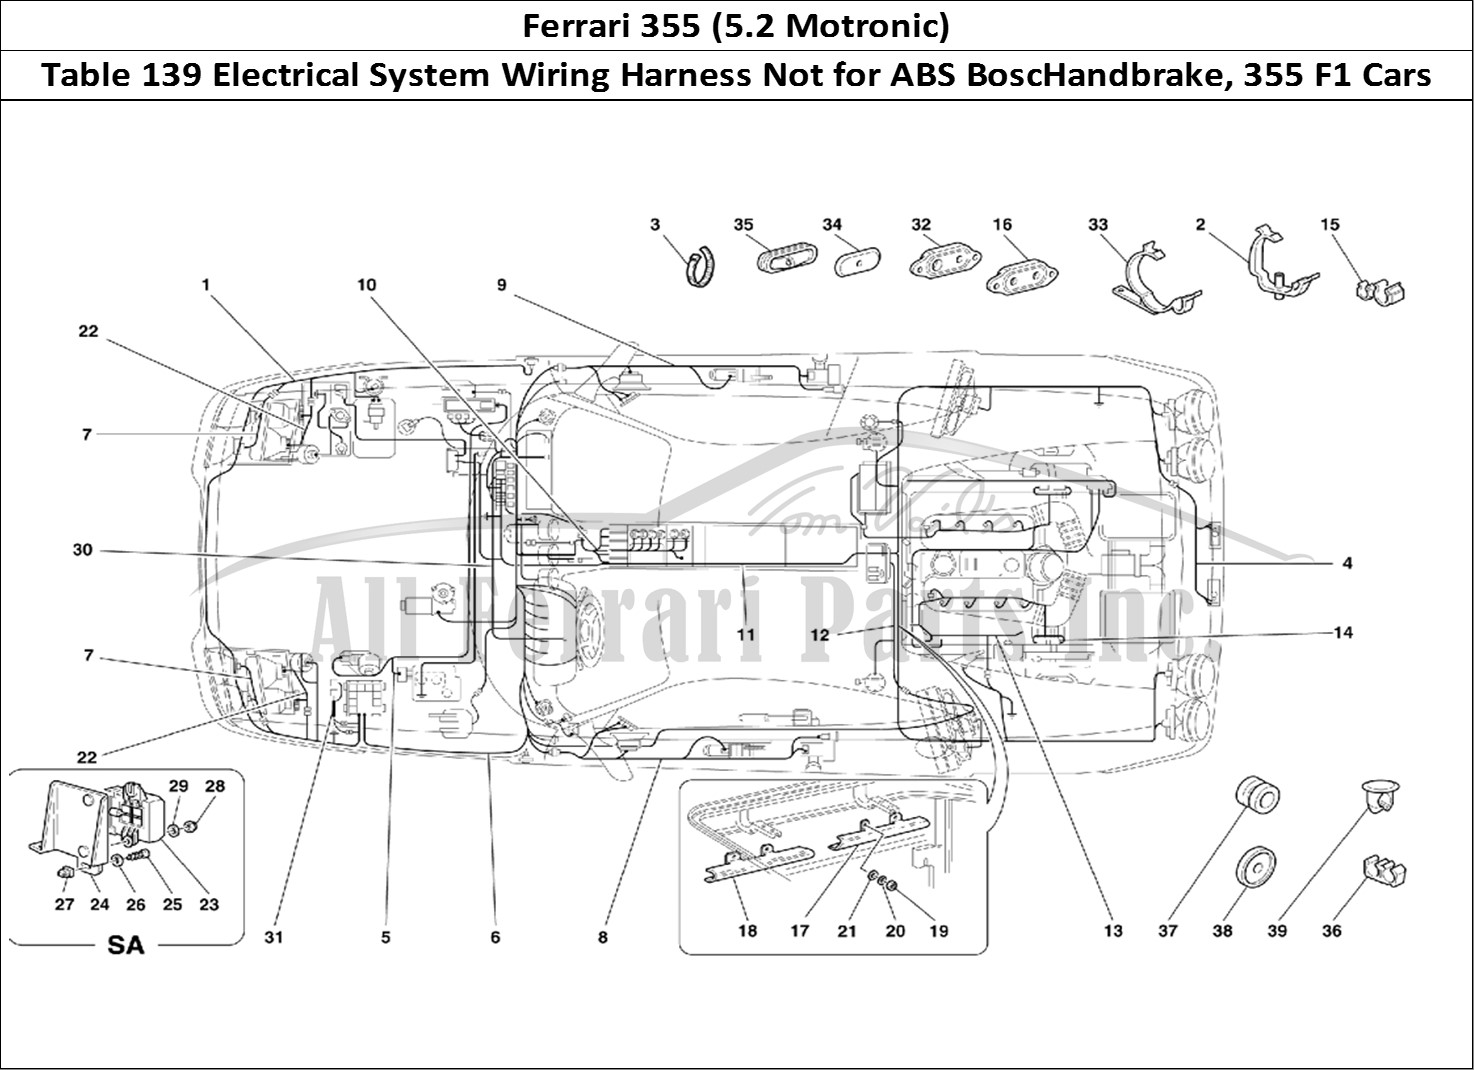 Ferrari 355 (5.2 Motronic) Bodywork Table 139 Electrical System Wiring  Harness Not for ABS BoscHandbrake, 355 F1 Cars